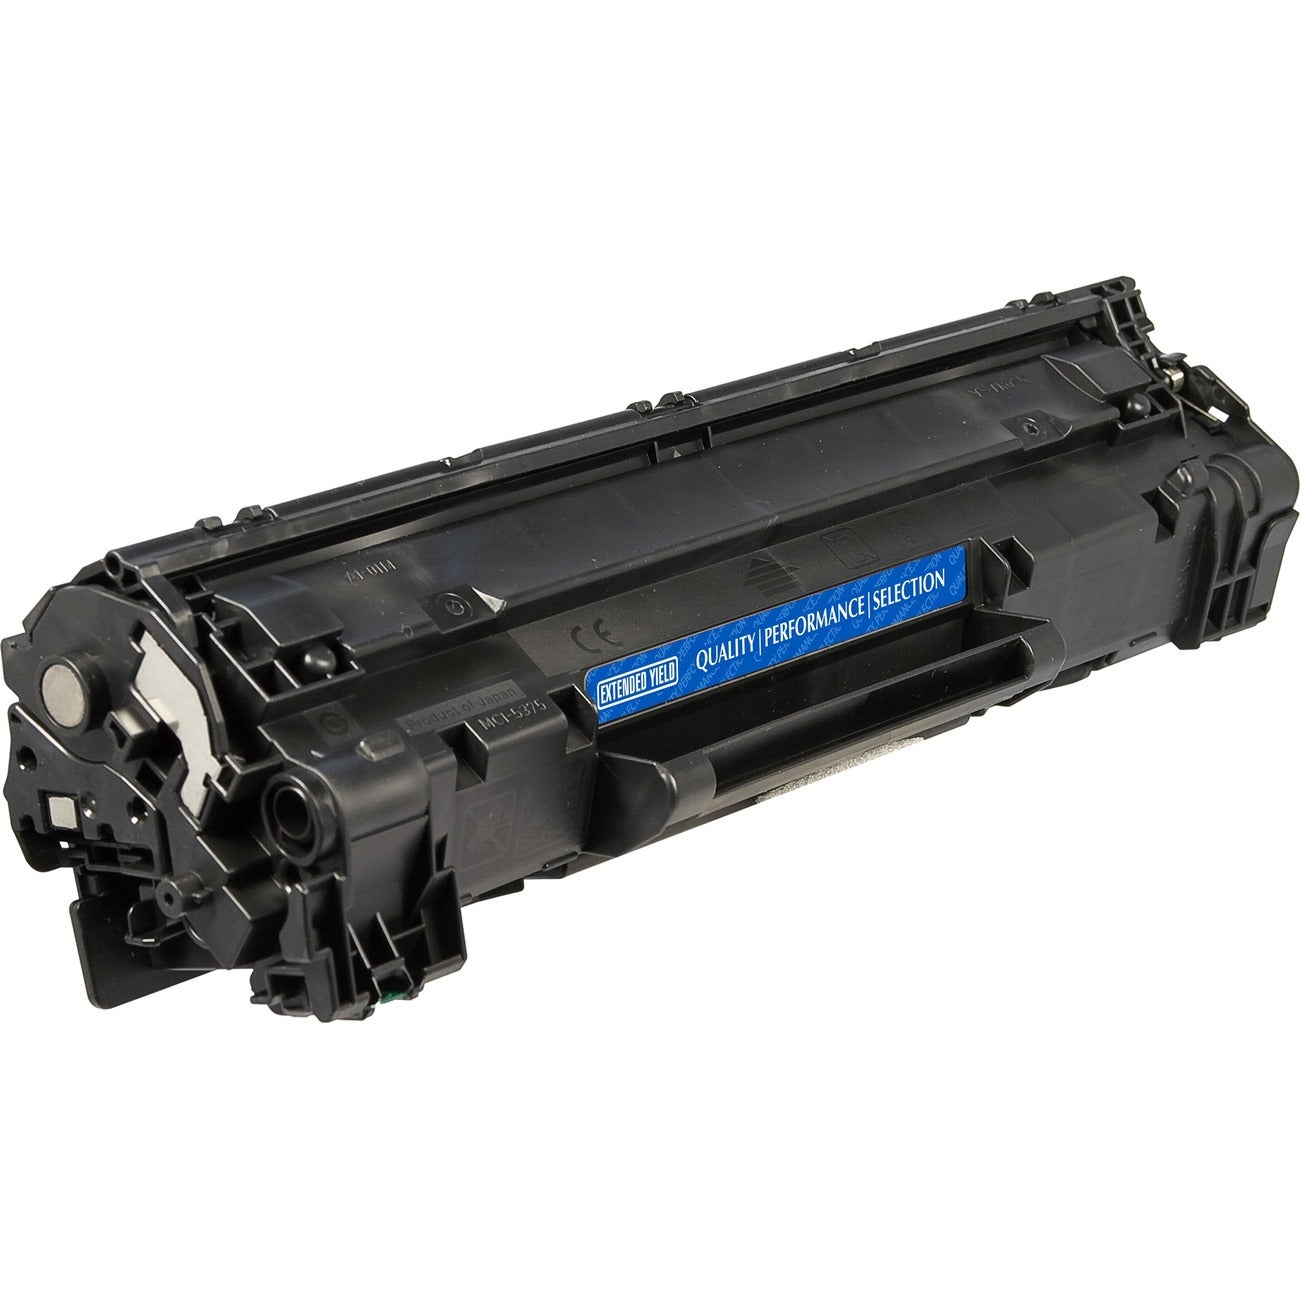 V7 Toner Cartridge - Remanufactured for HP (CE285A) - Black